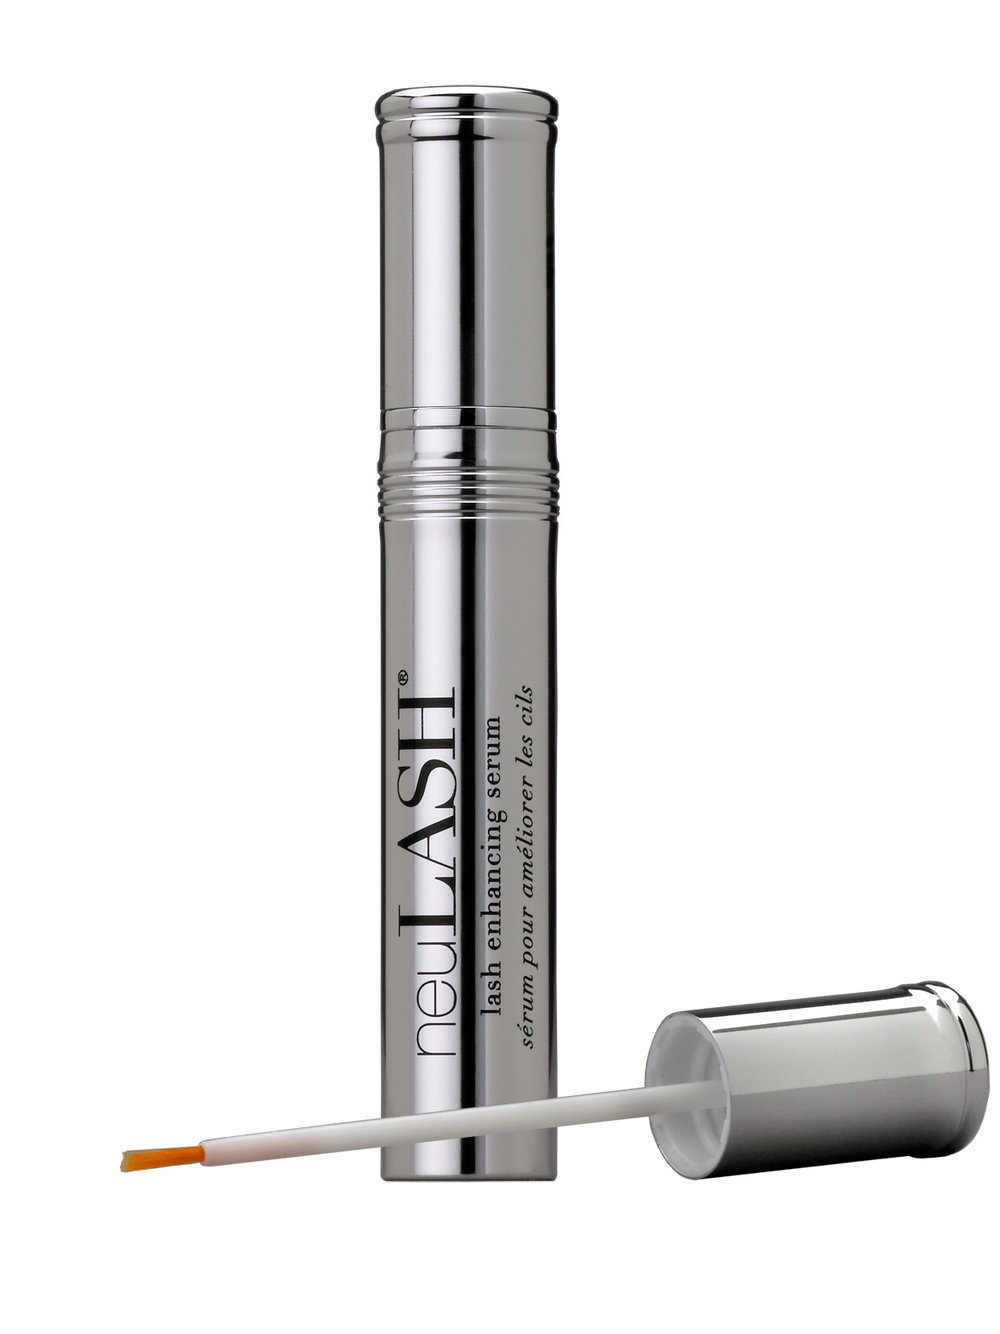 neuLASH by SKIN RESEARCH LABS